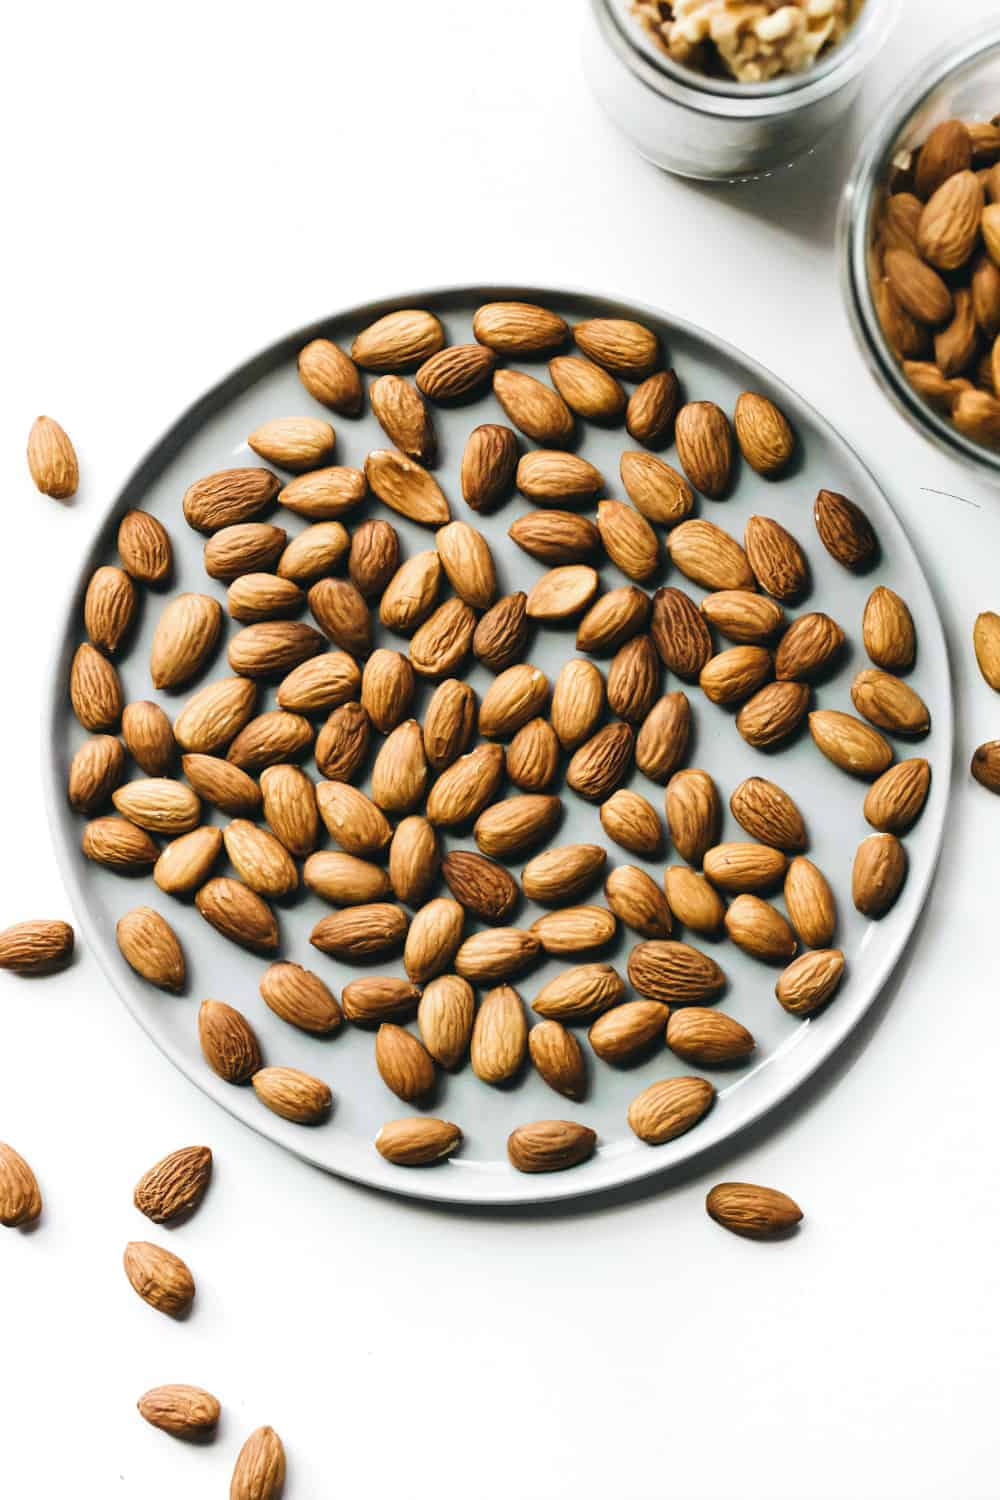 Whole almonds arranged on a plate